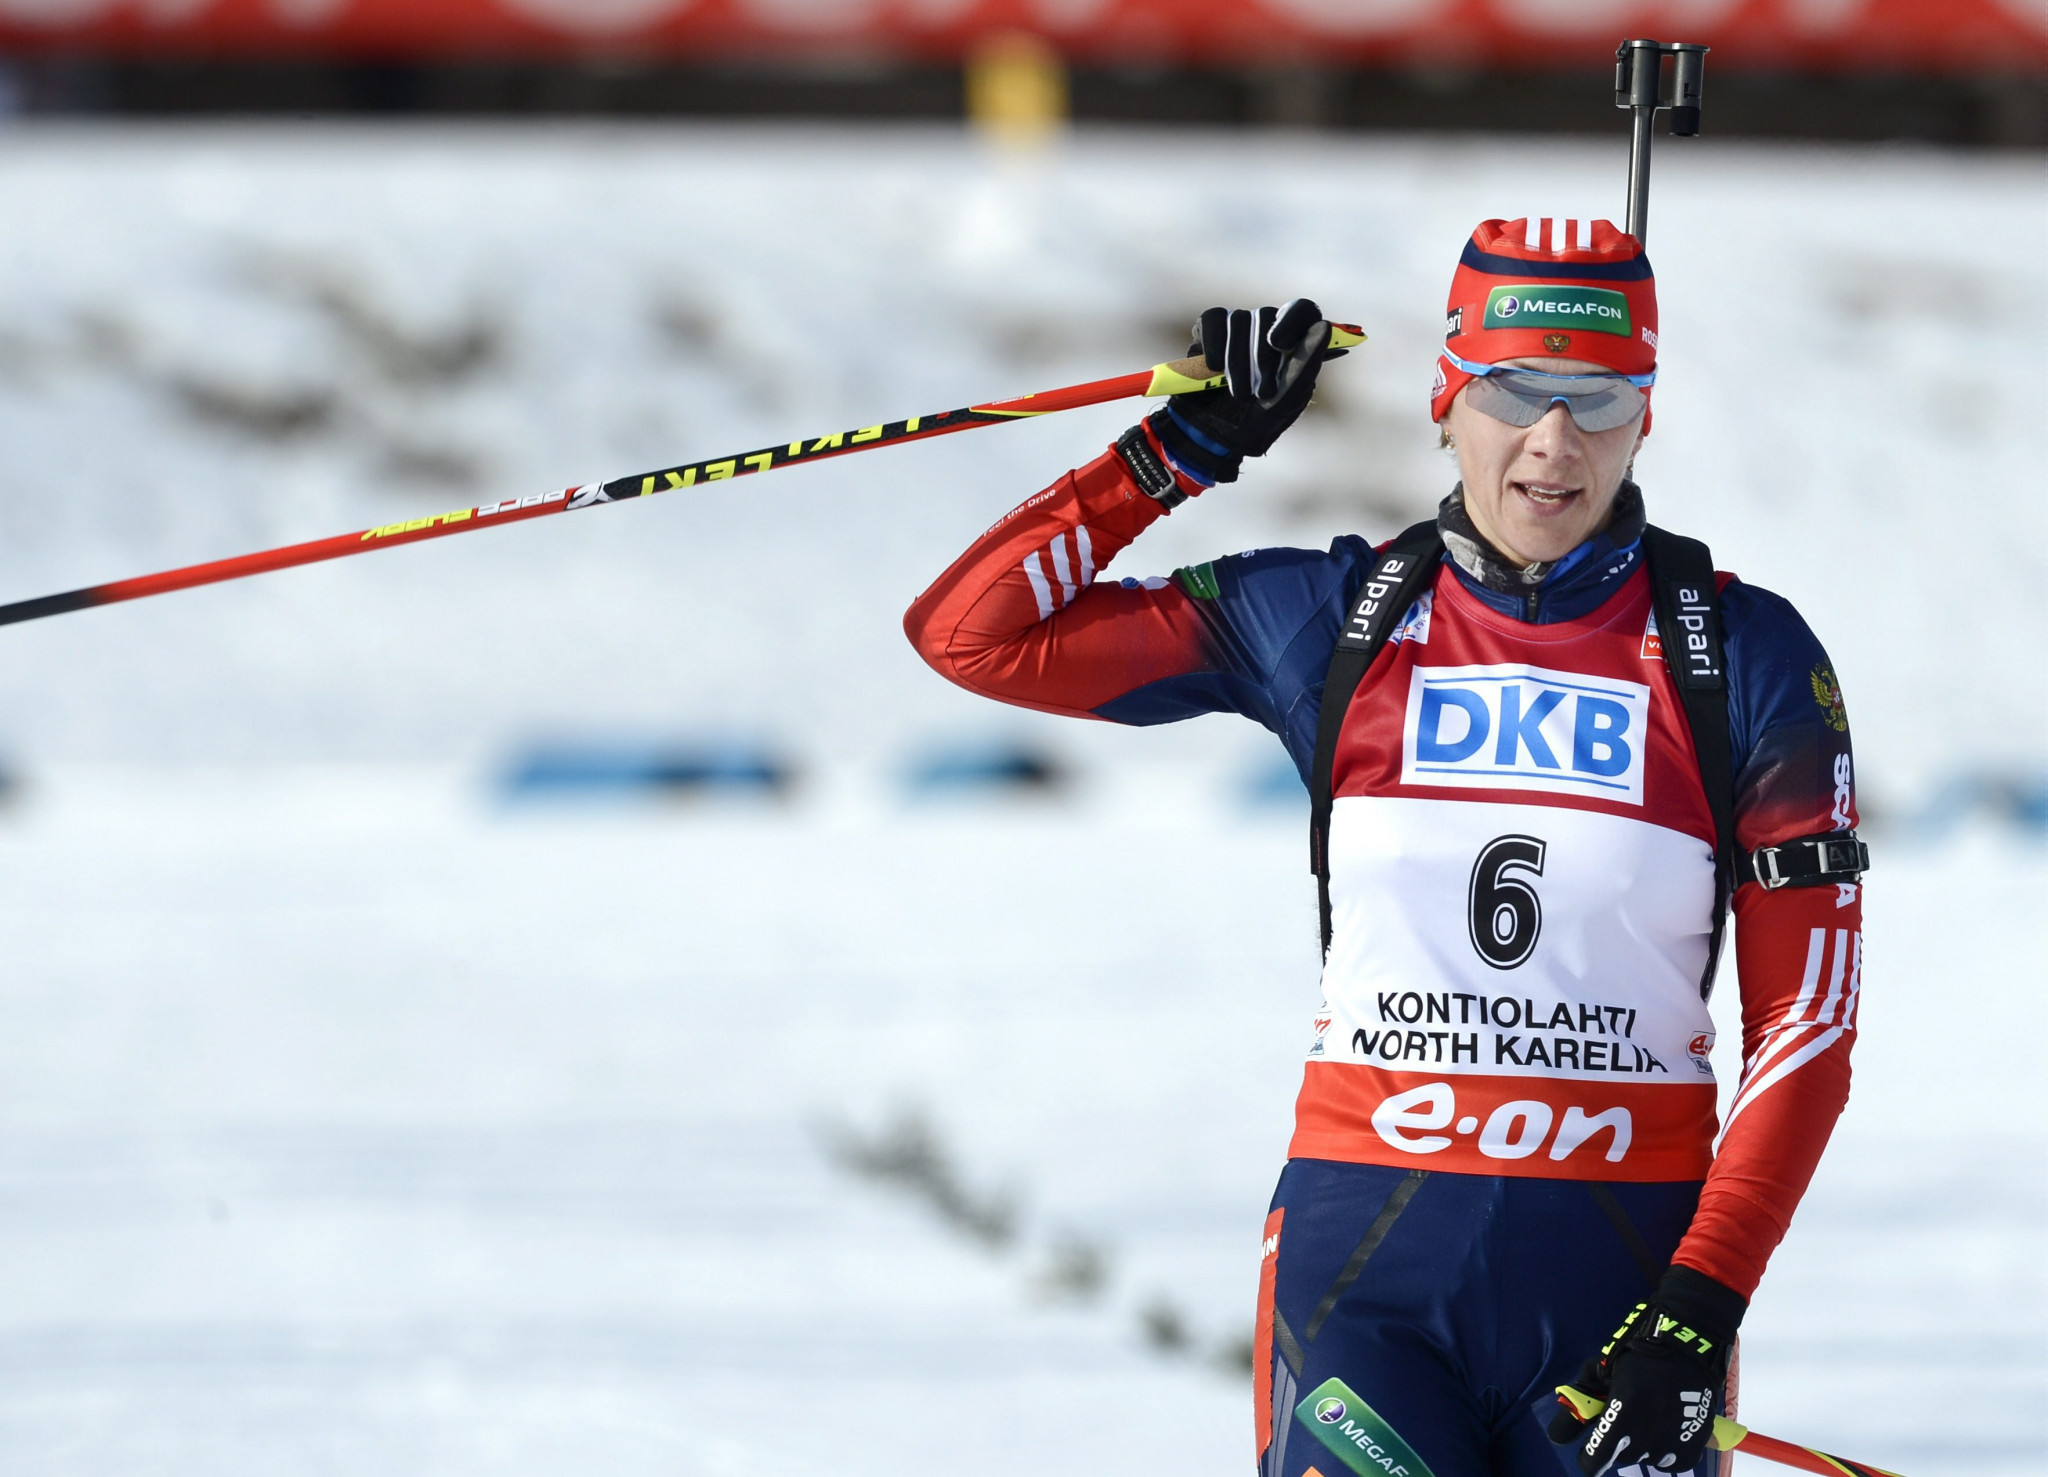 Russian biathletes file criminal complaint over alleged Rodchenkov forgery claims